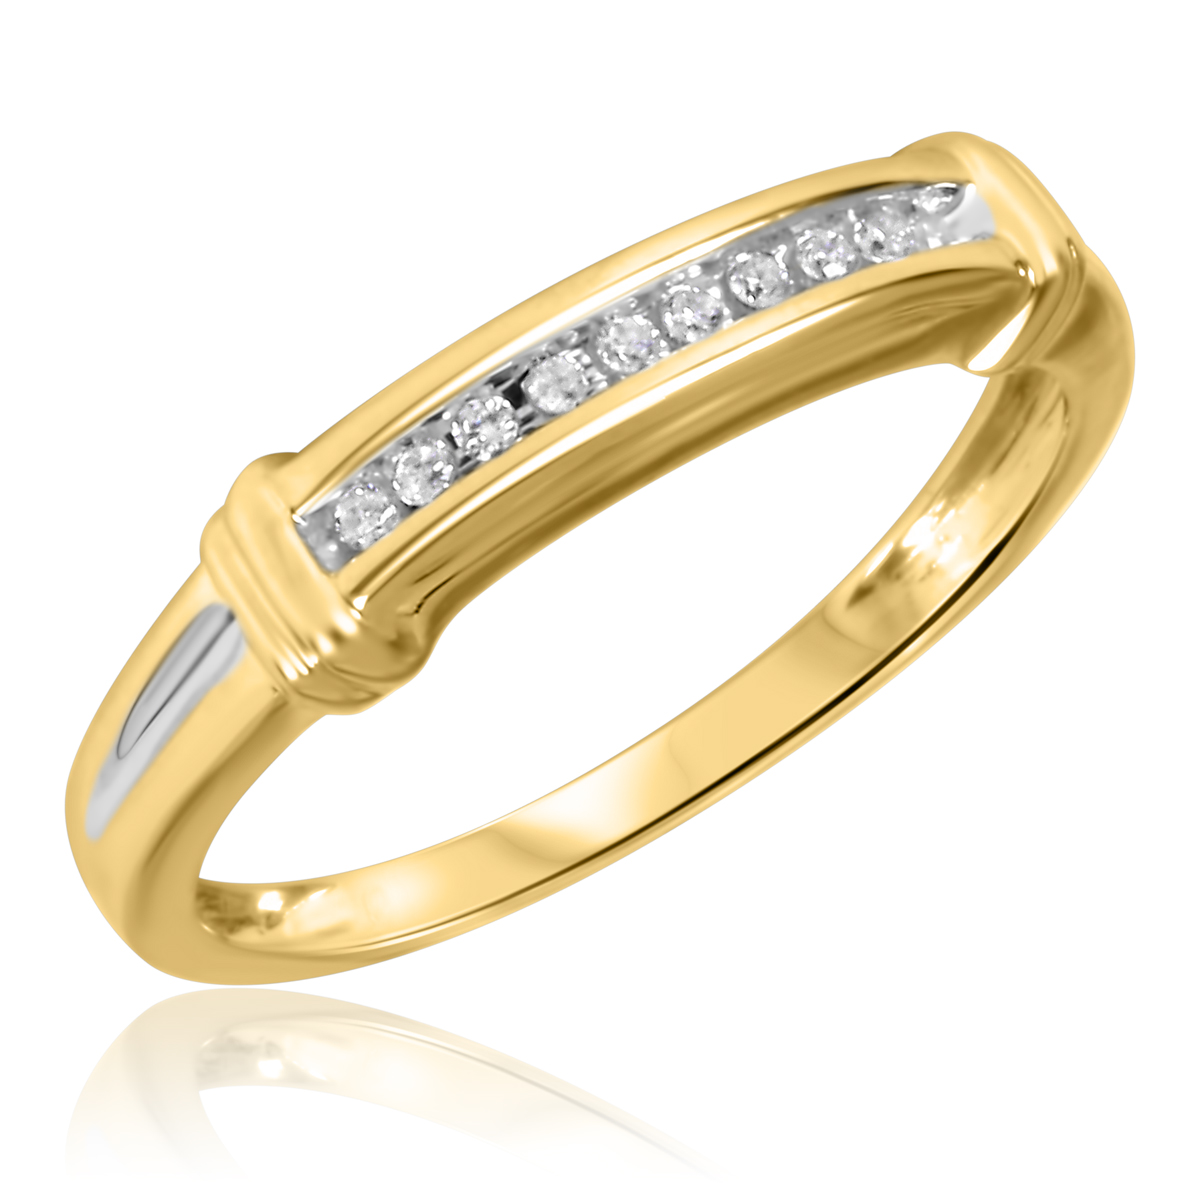 1/10 CT. T.W. Round Cut Diamond Ladies Wedding Band 10K Yellow Gold- Size 8